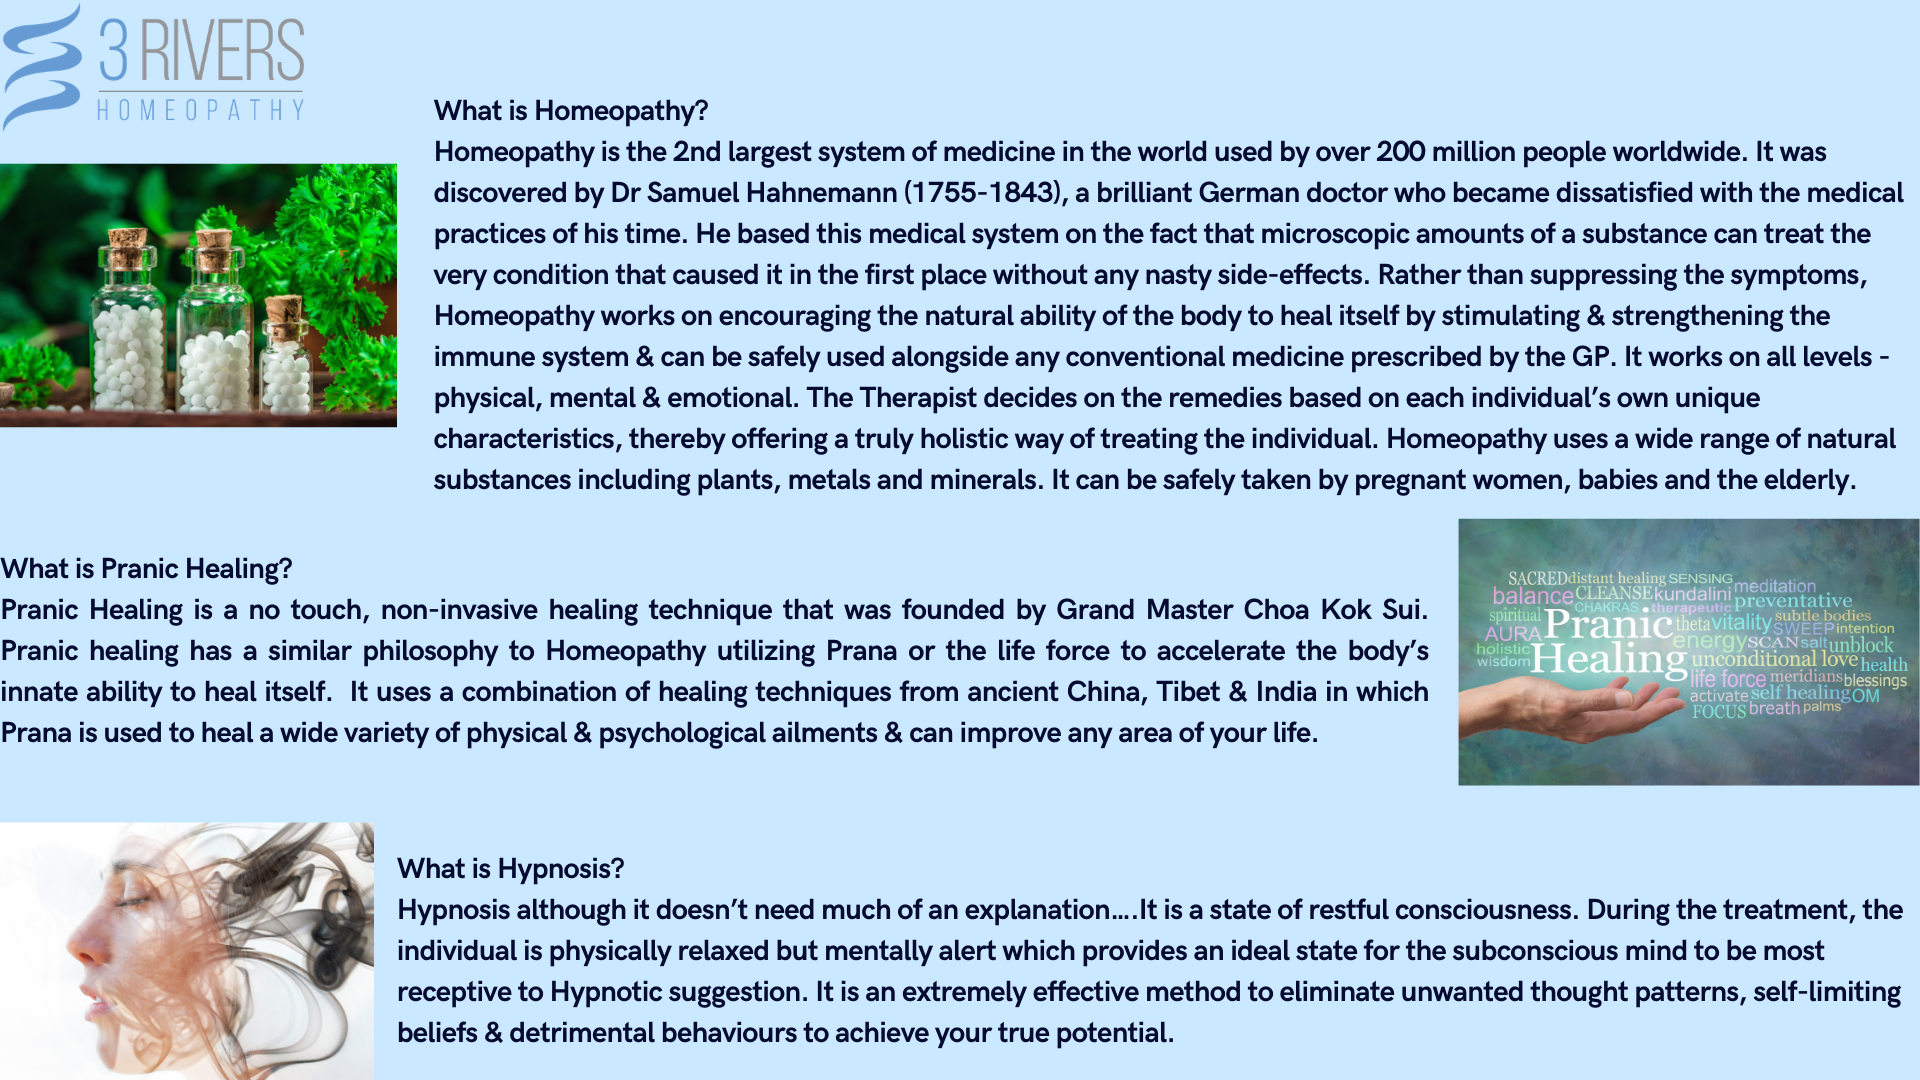 What is Homeopathy, Hypnosis and Pranic Healing